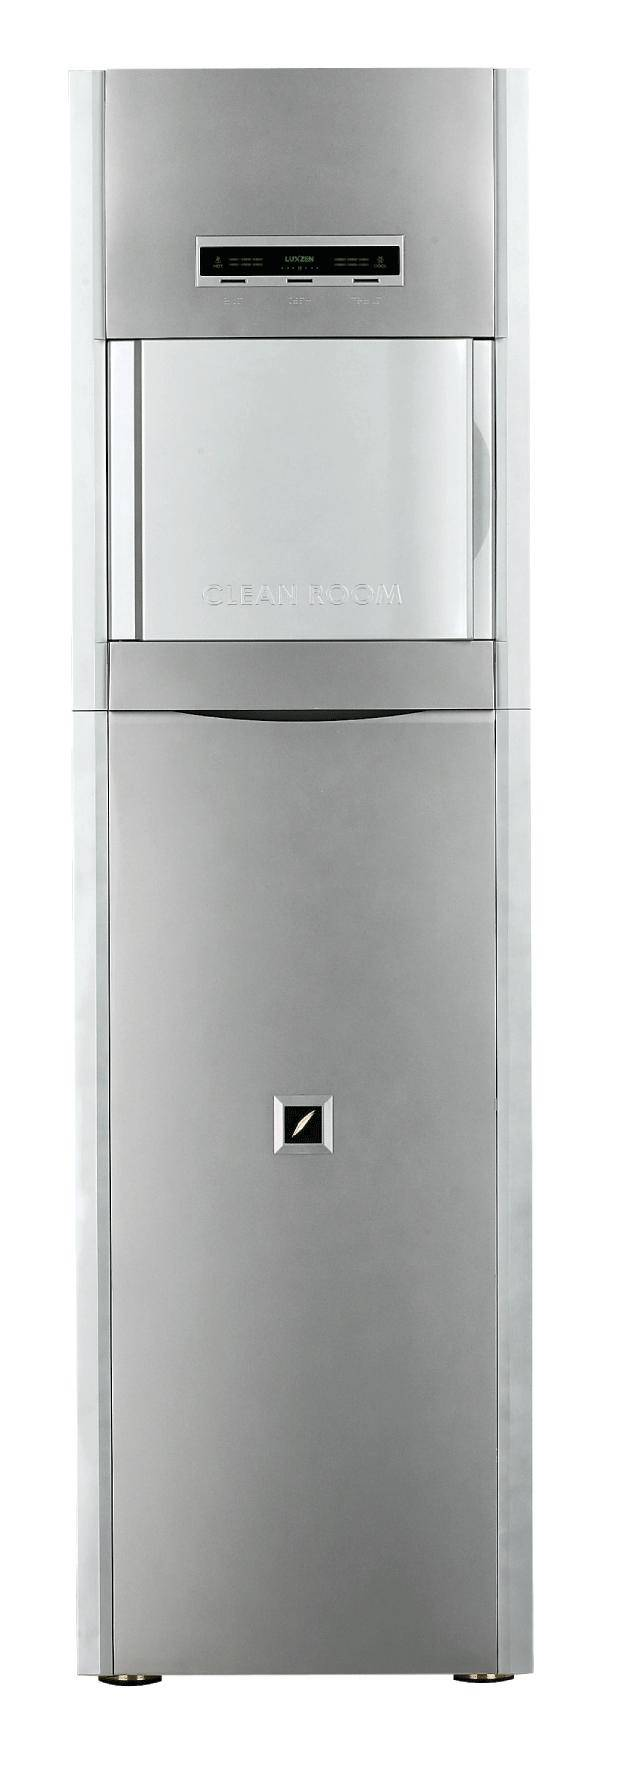 Sell: LUXZEN Cold/Hot Water Purifier(JNW-1300)